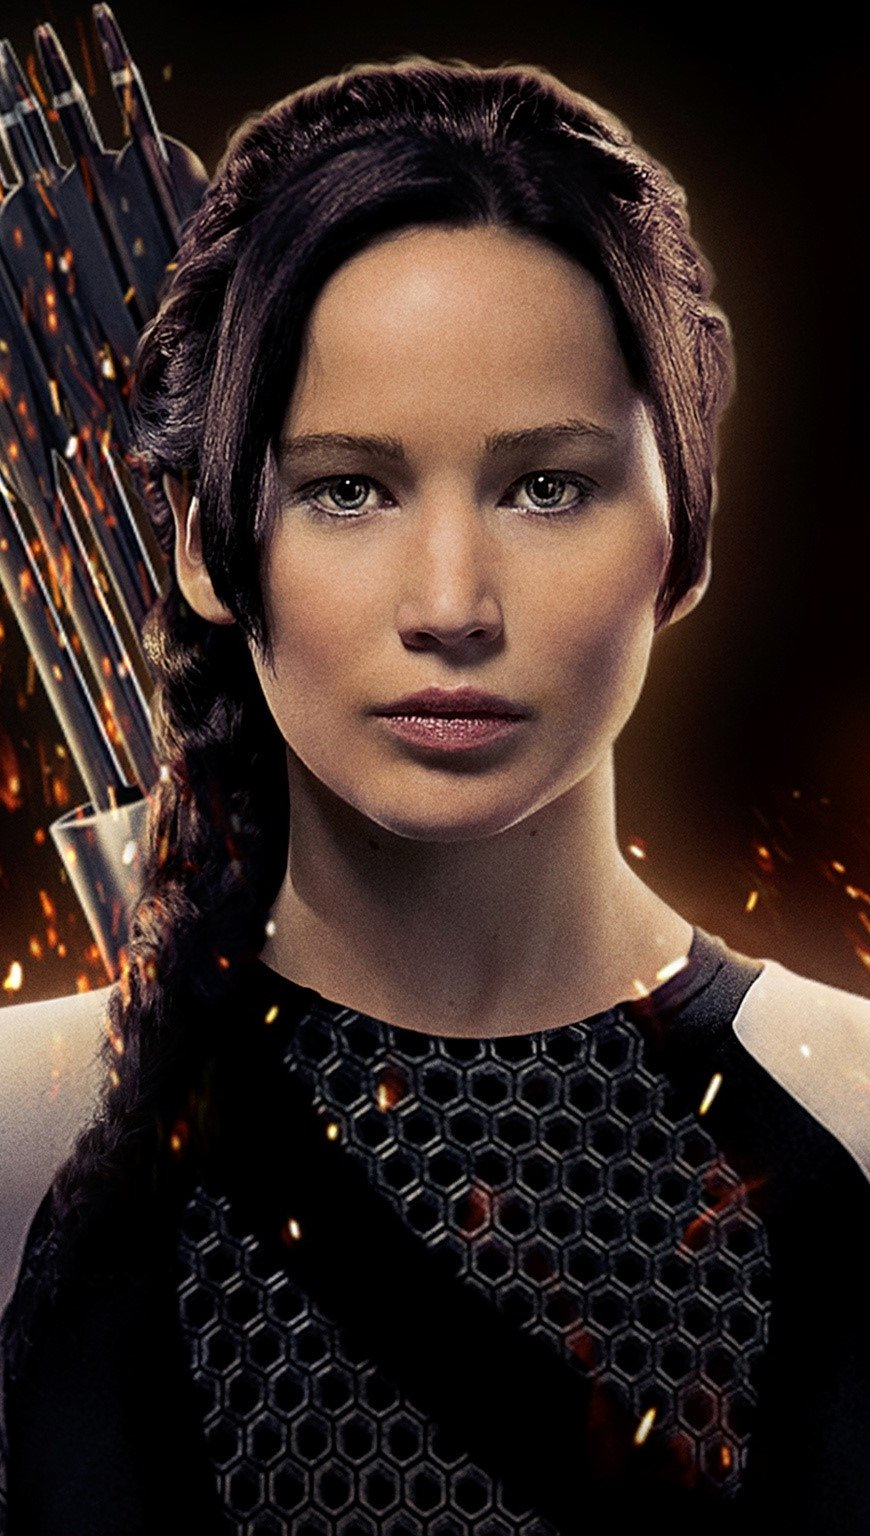 Fondos de pantalla Jennifer lawrence as katniss Vertical